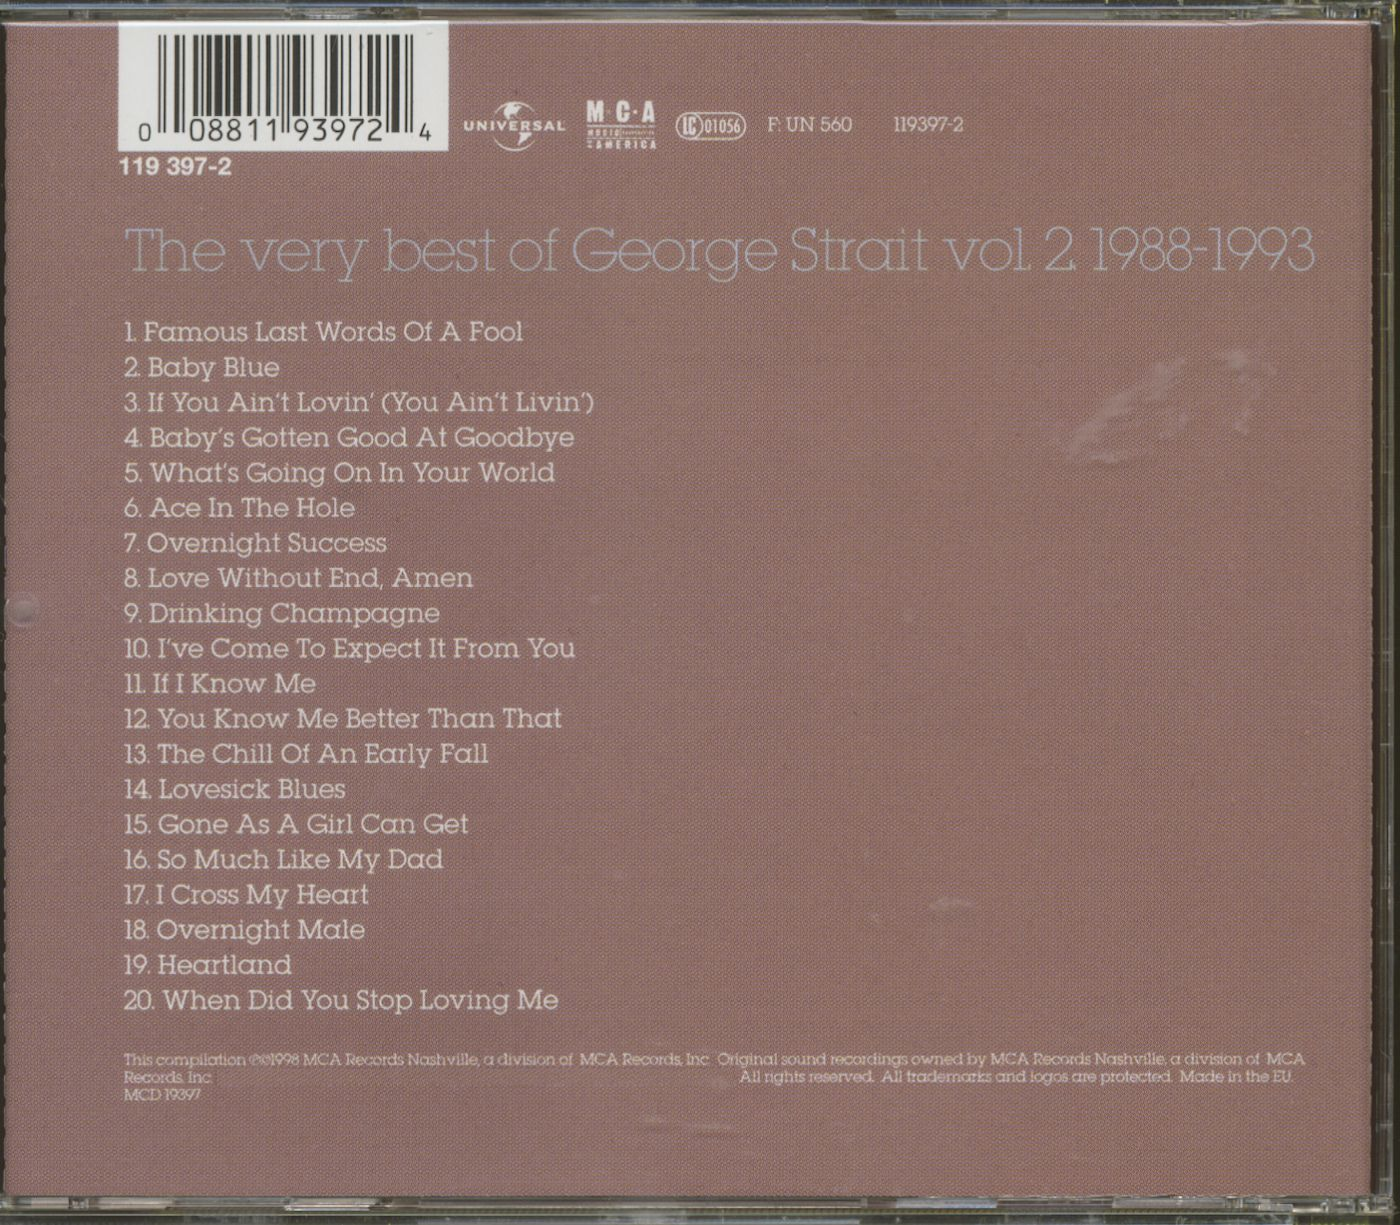 George Strait Cd The Very Best Of George Strait Vol 2